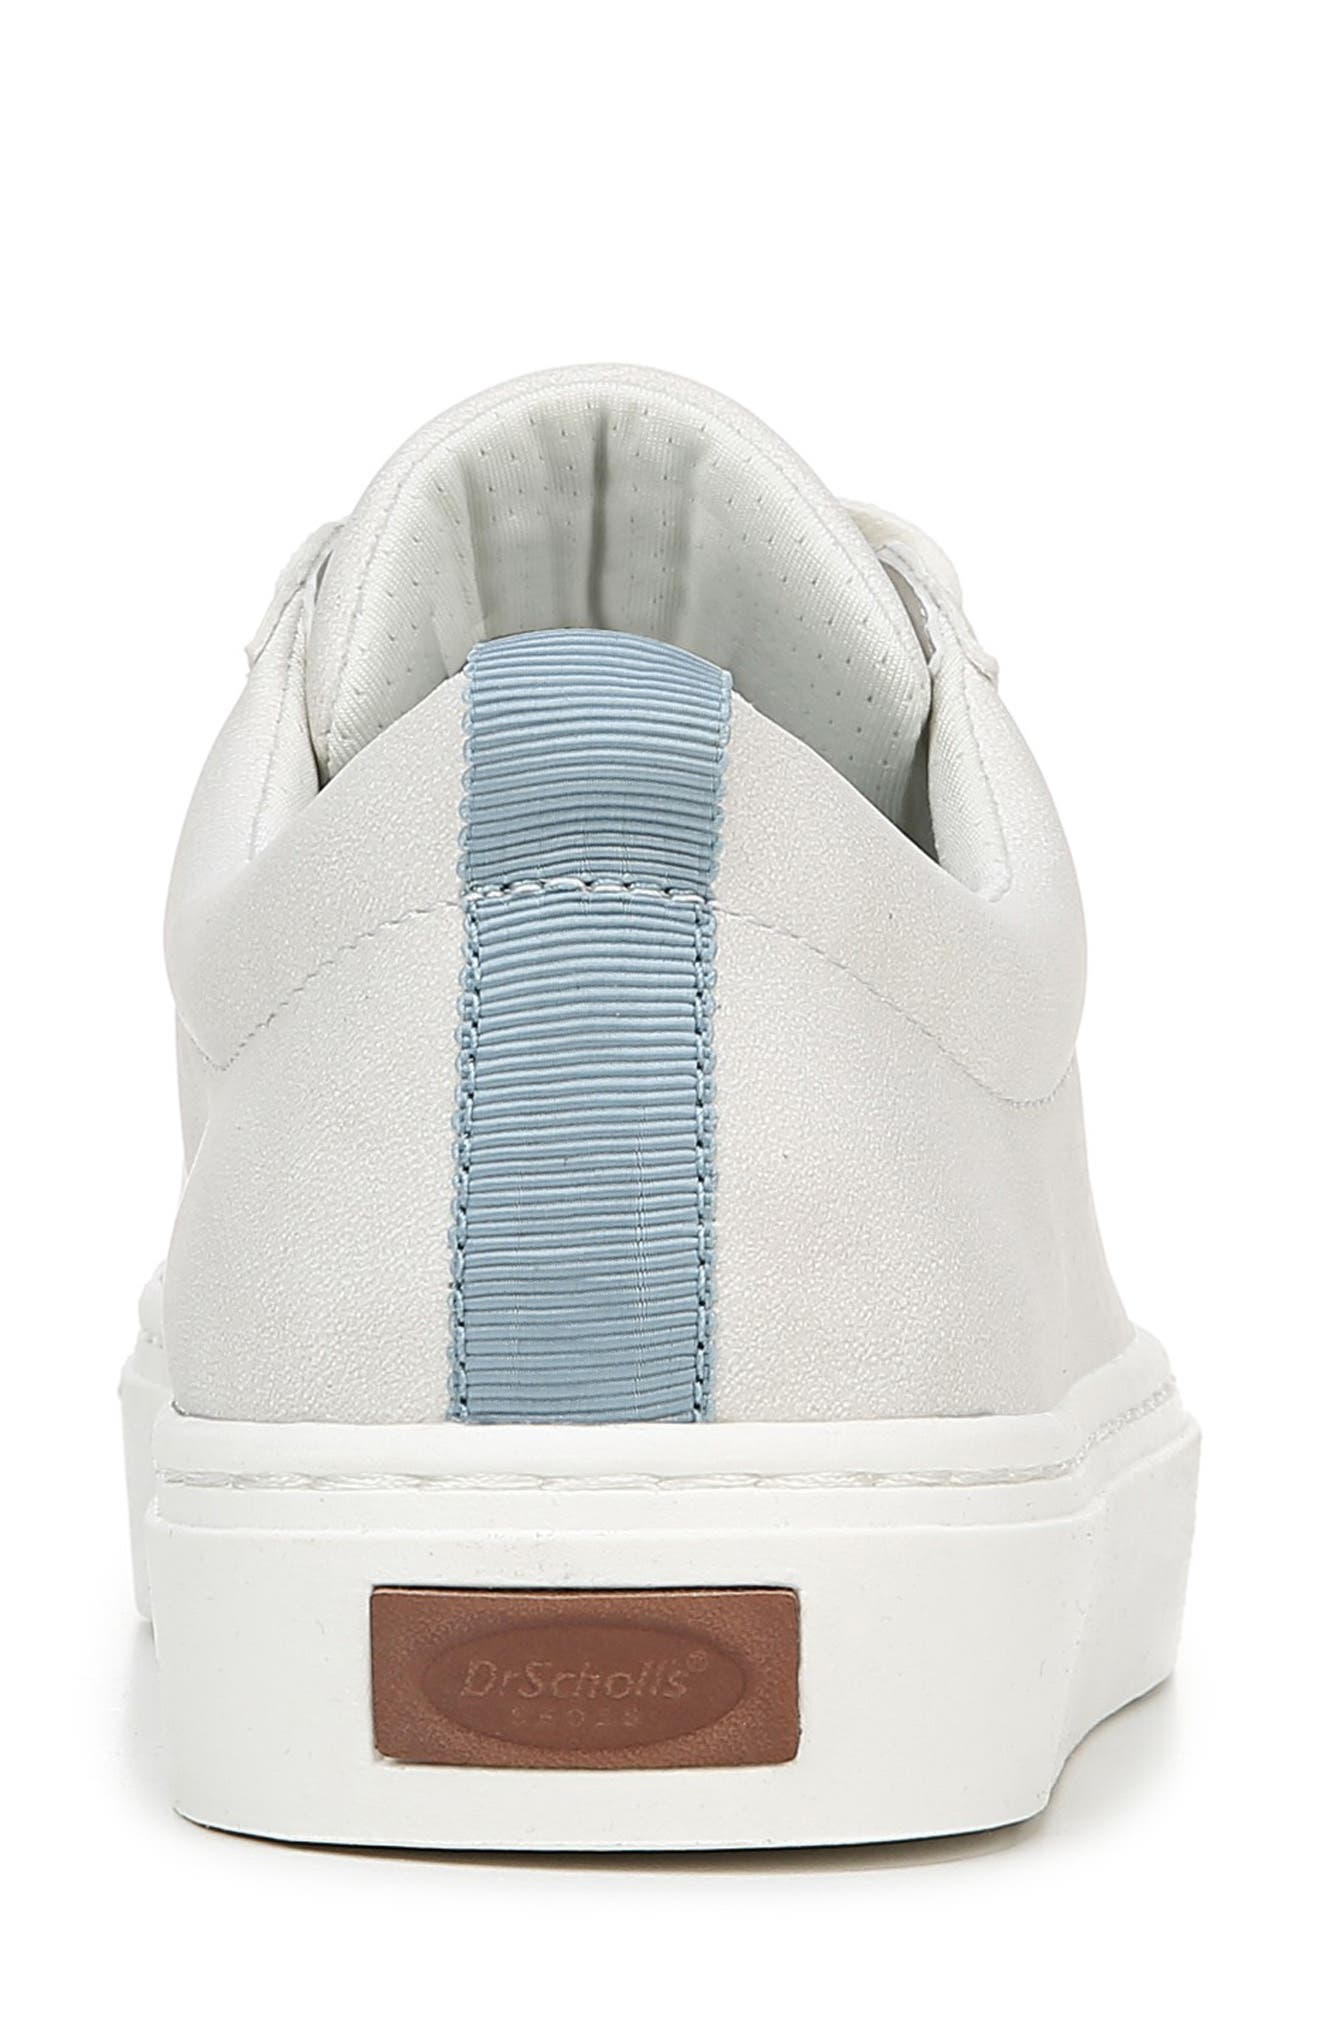 DR. SCHOLL'S, No Bad Vibes Sneaker, Alternate thumbnail 6, color, WHITE FAUX LEATHER